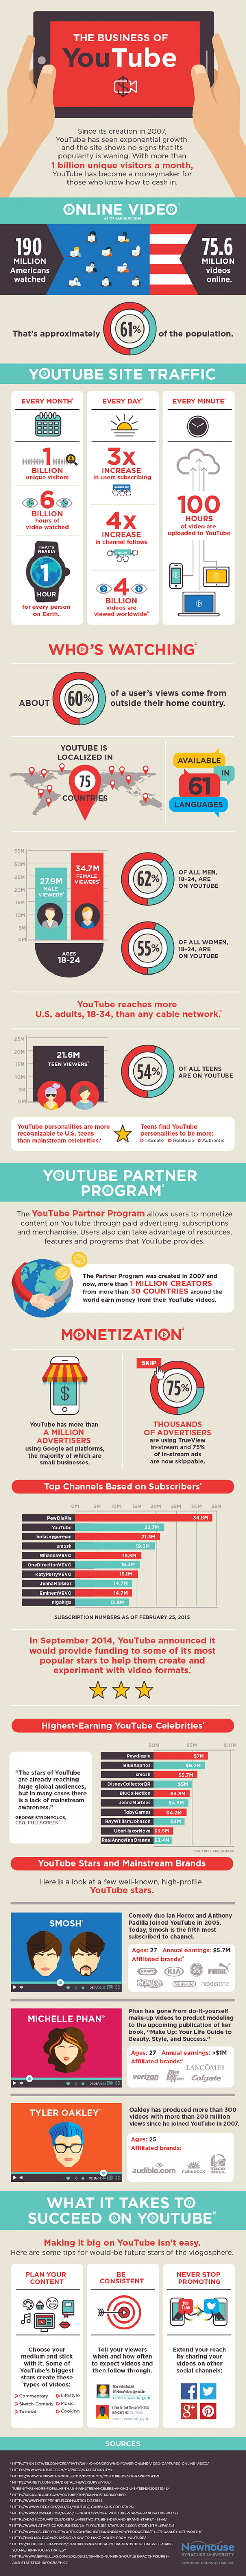 The Business of YouTube Infographic